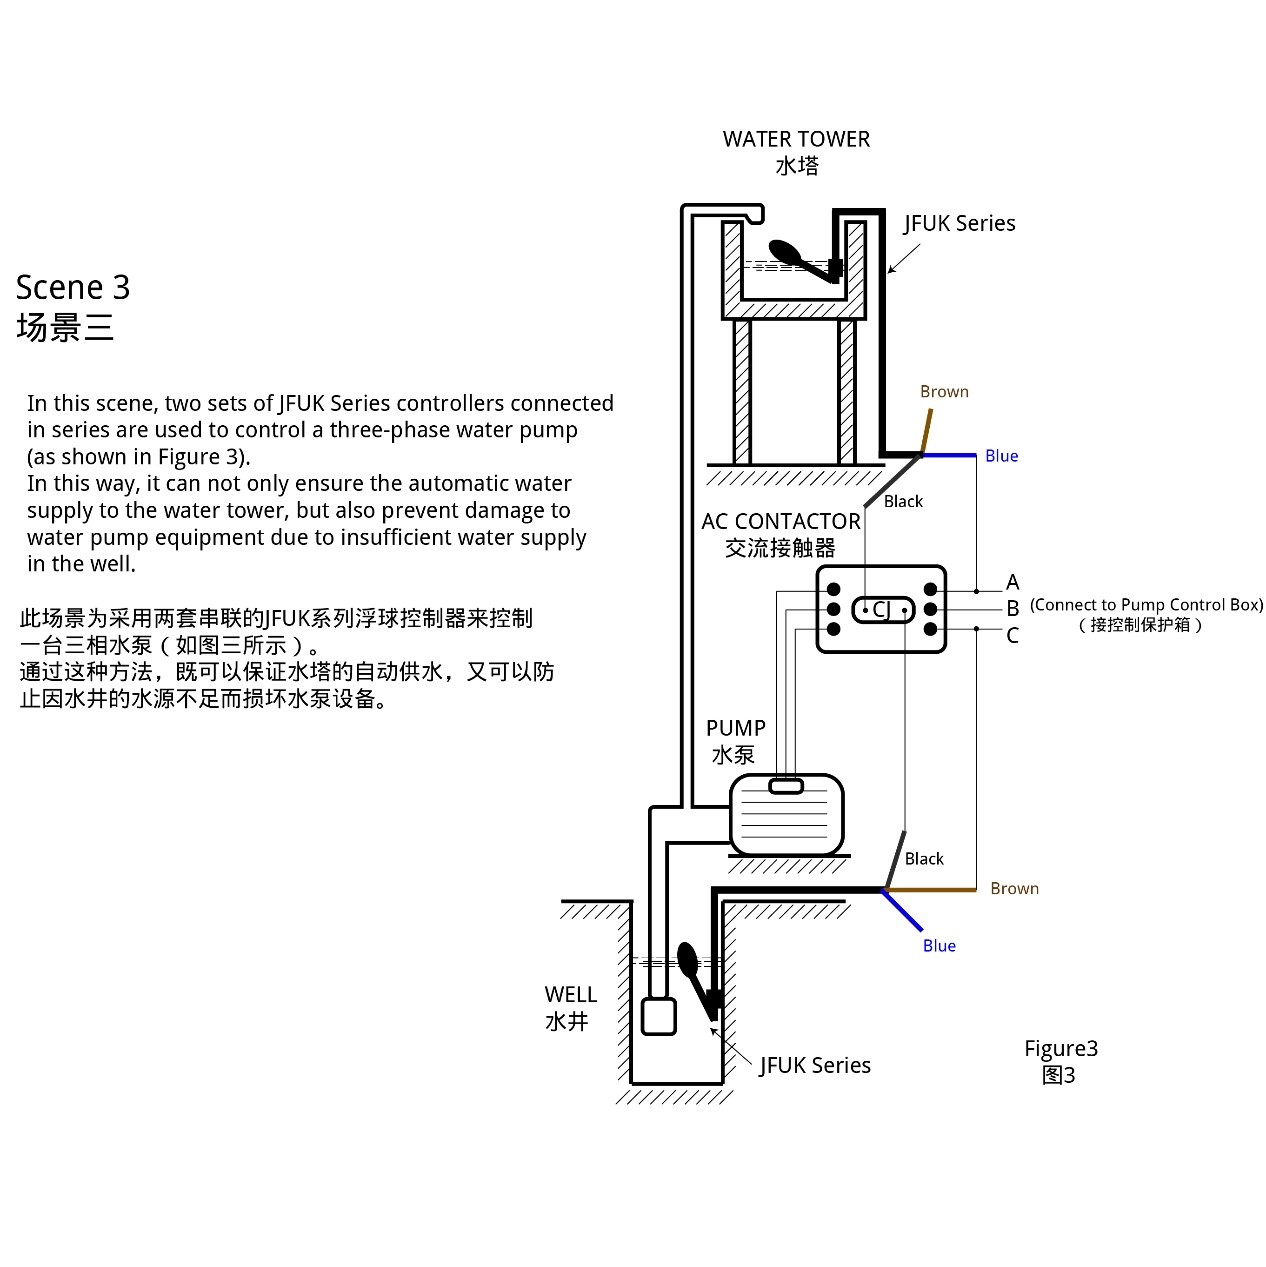 JFUK series wiring diagram1 stage3